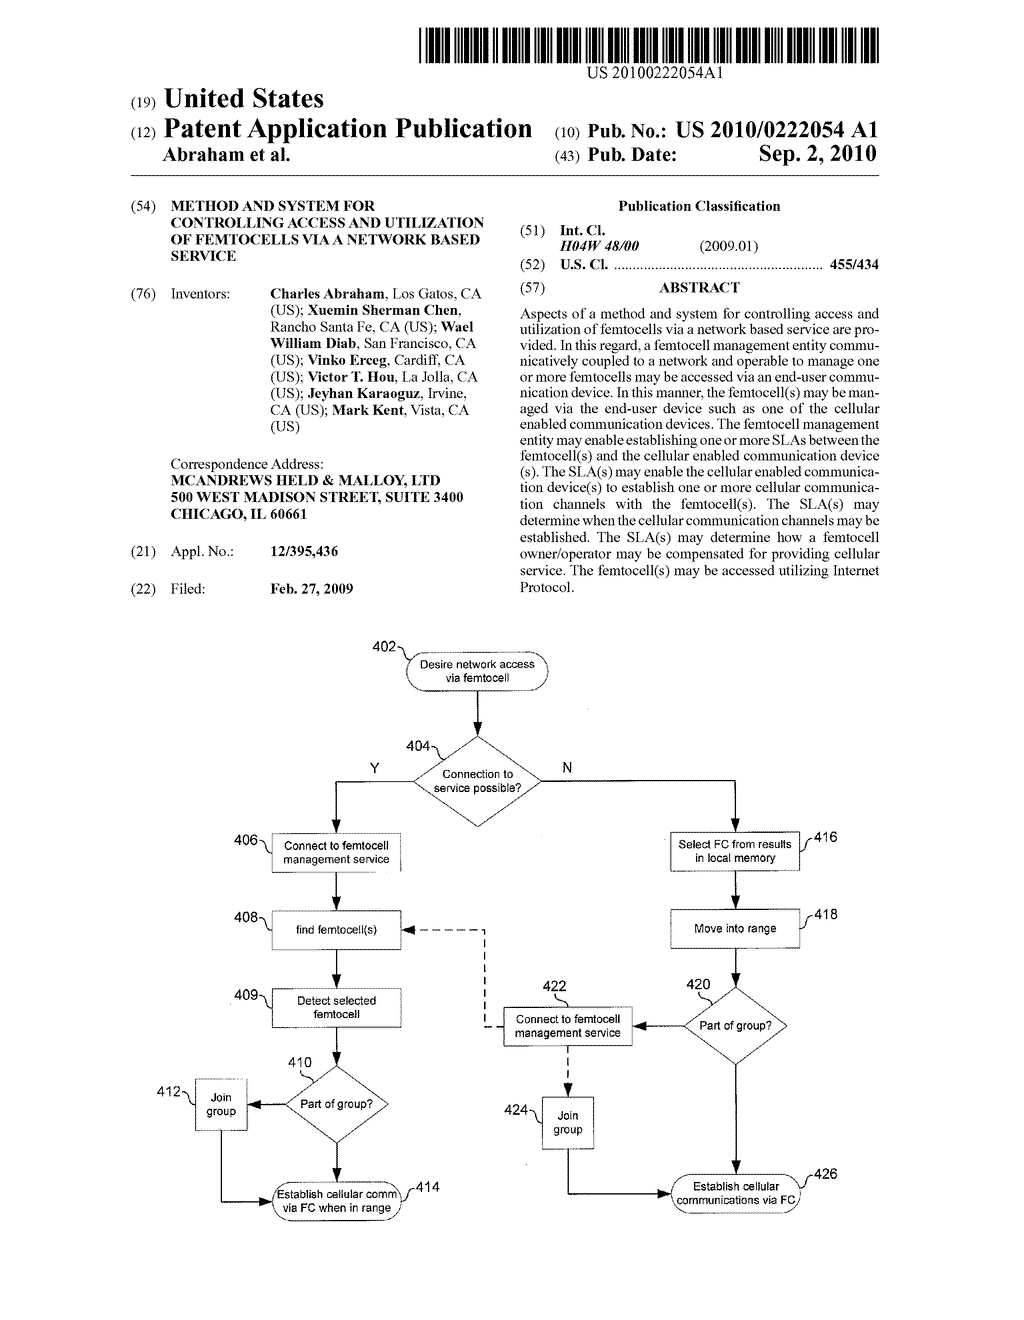 METHOD AND SYSTEM FOR CONTROLLING ACCESS AND UTILIZATION OF FEMTOCELLS VIA A NETWORK BASED SERVICE - diagram, schematic, and image 01